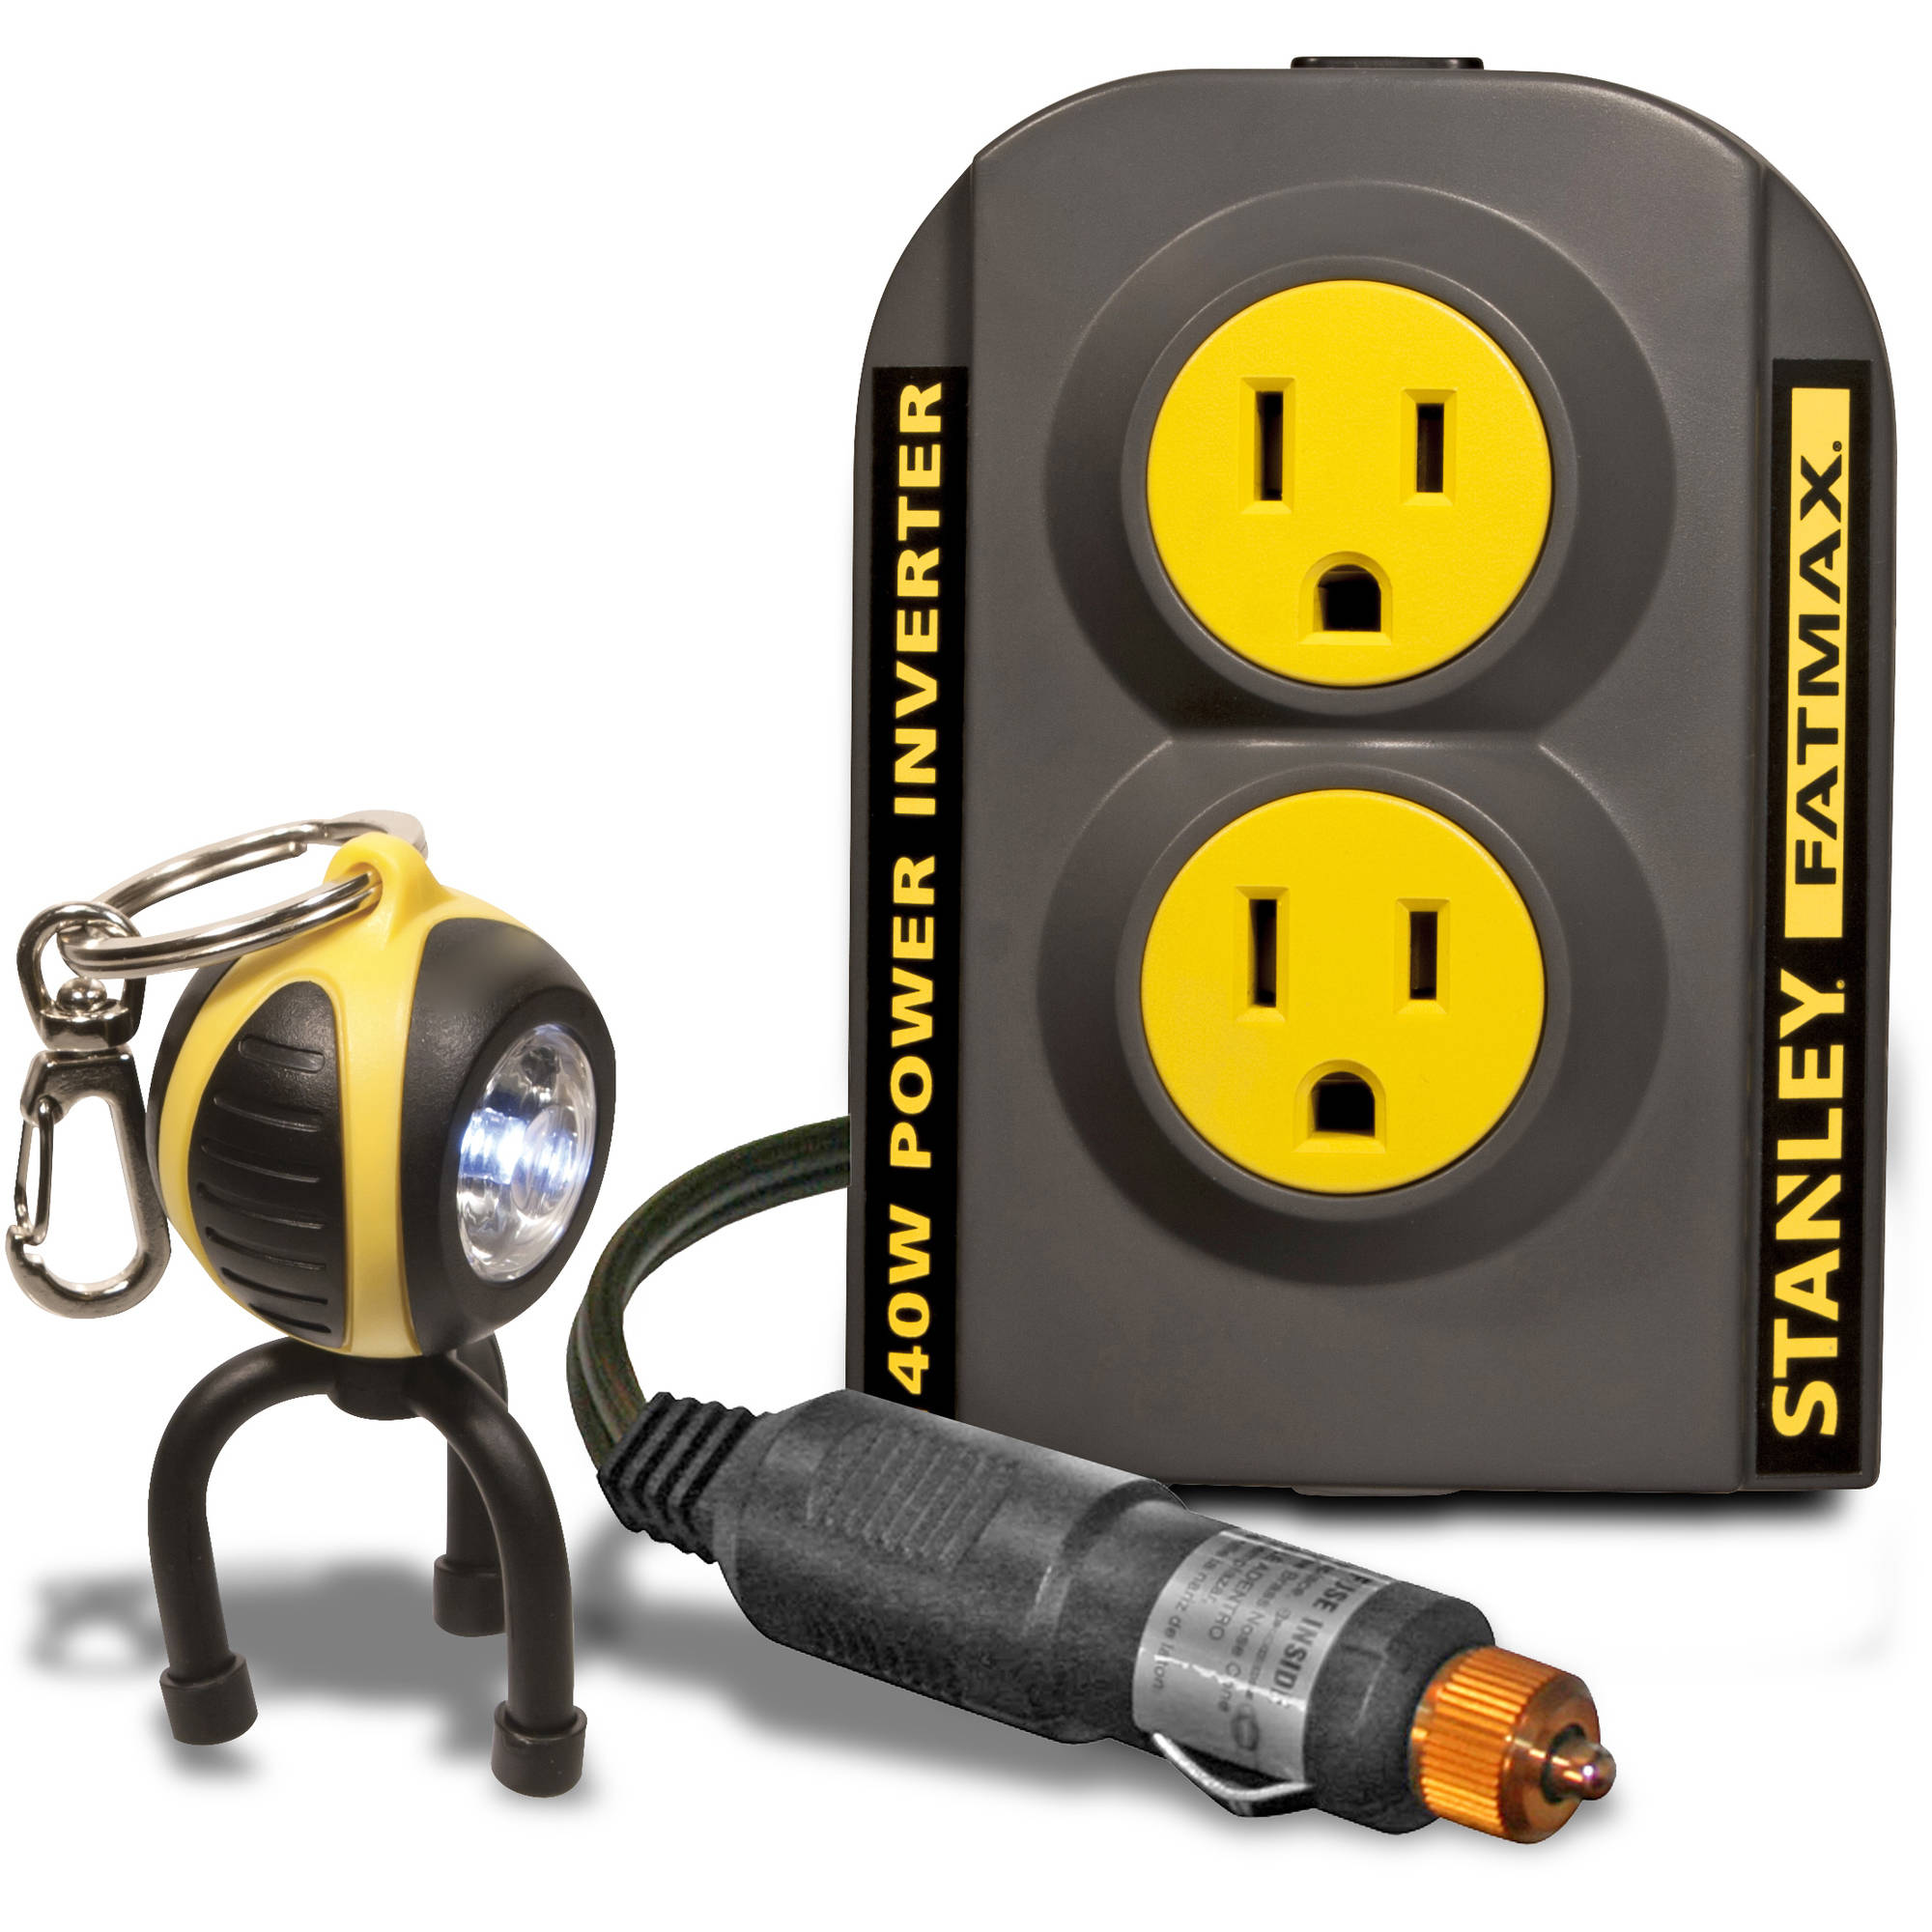 Stanley FatMax 140W Power Inverter with Bonus Keychain LED Light